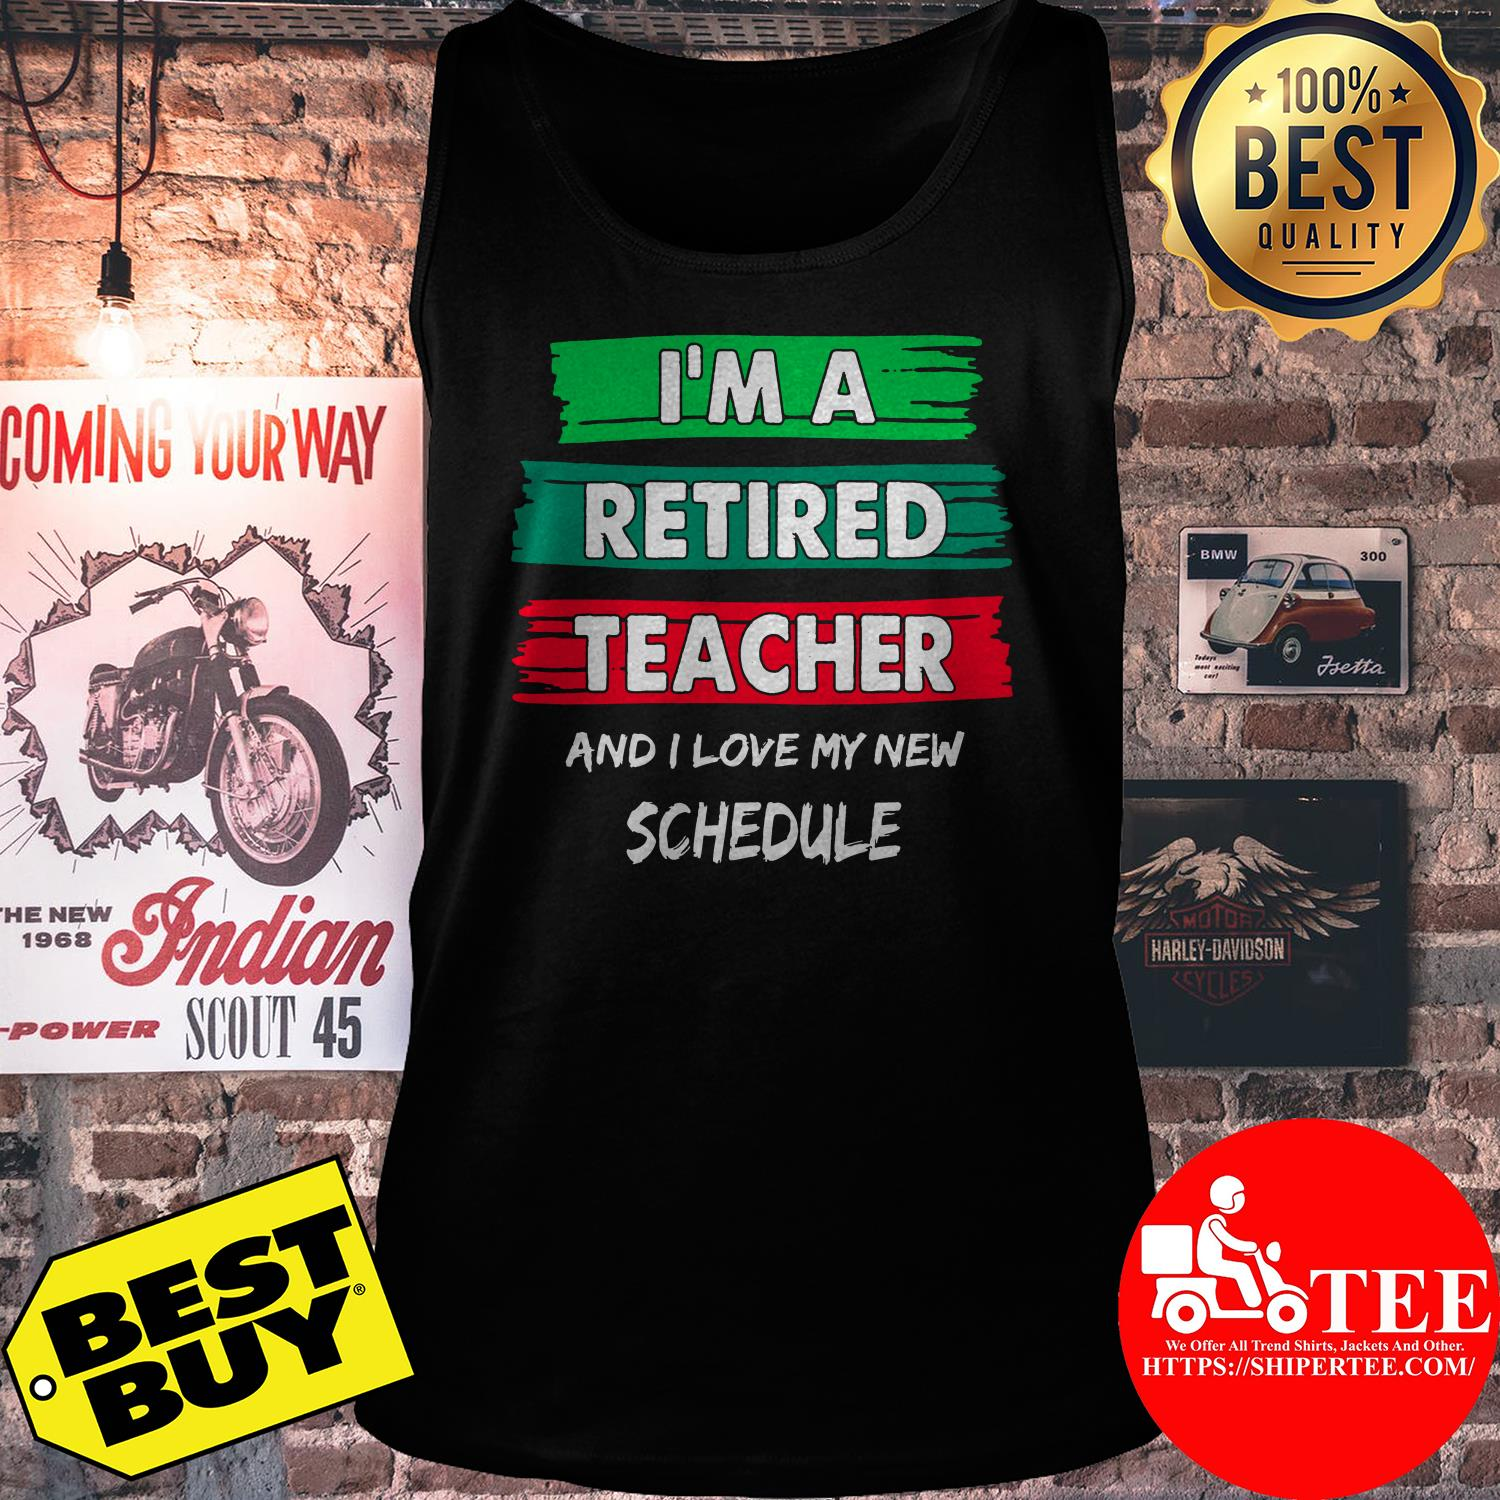 I'm a retired teacher and I love my new schedule tank top